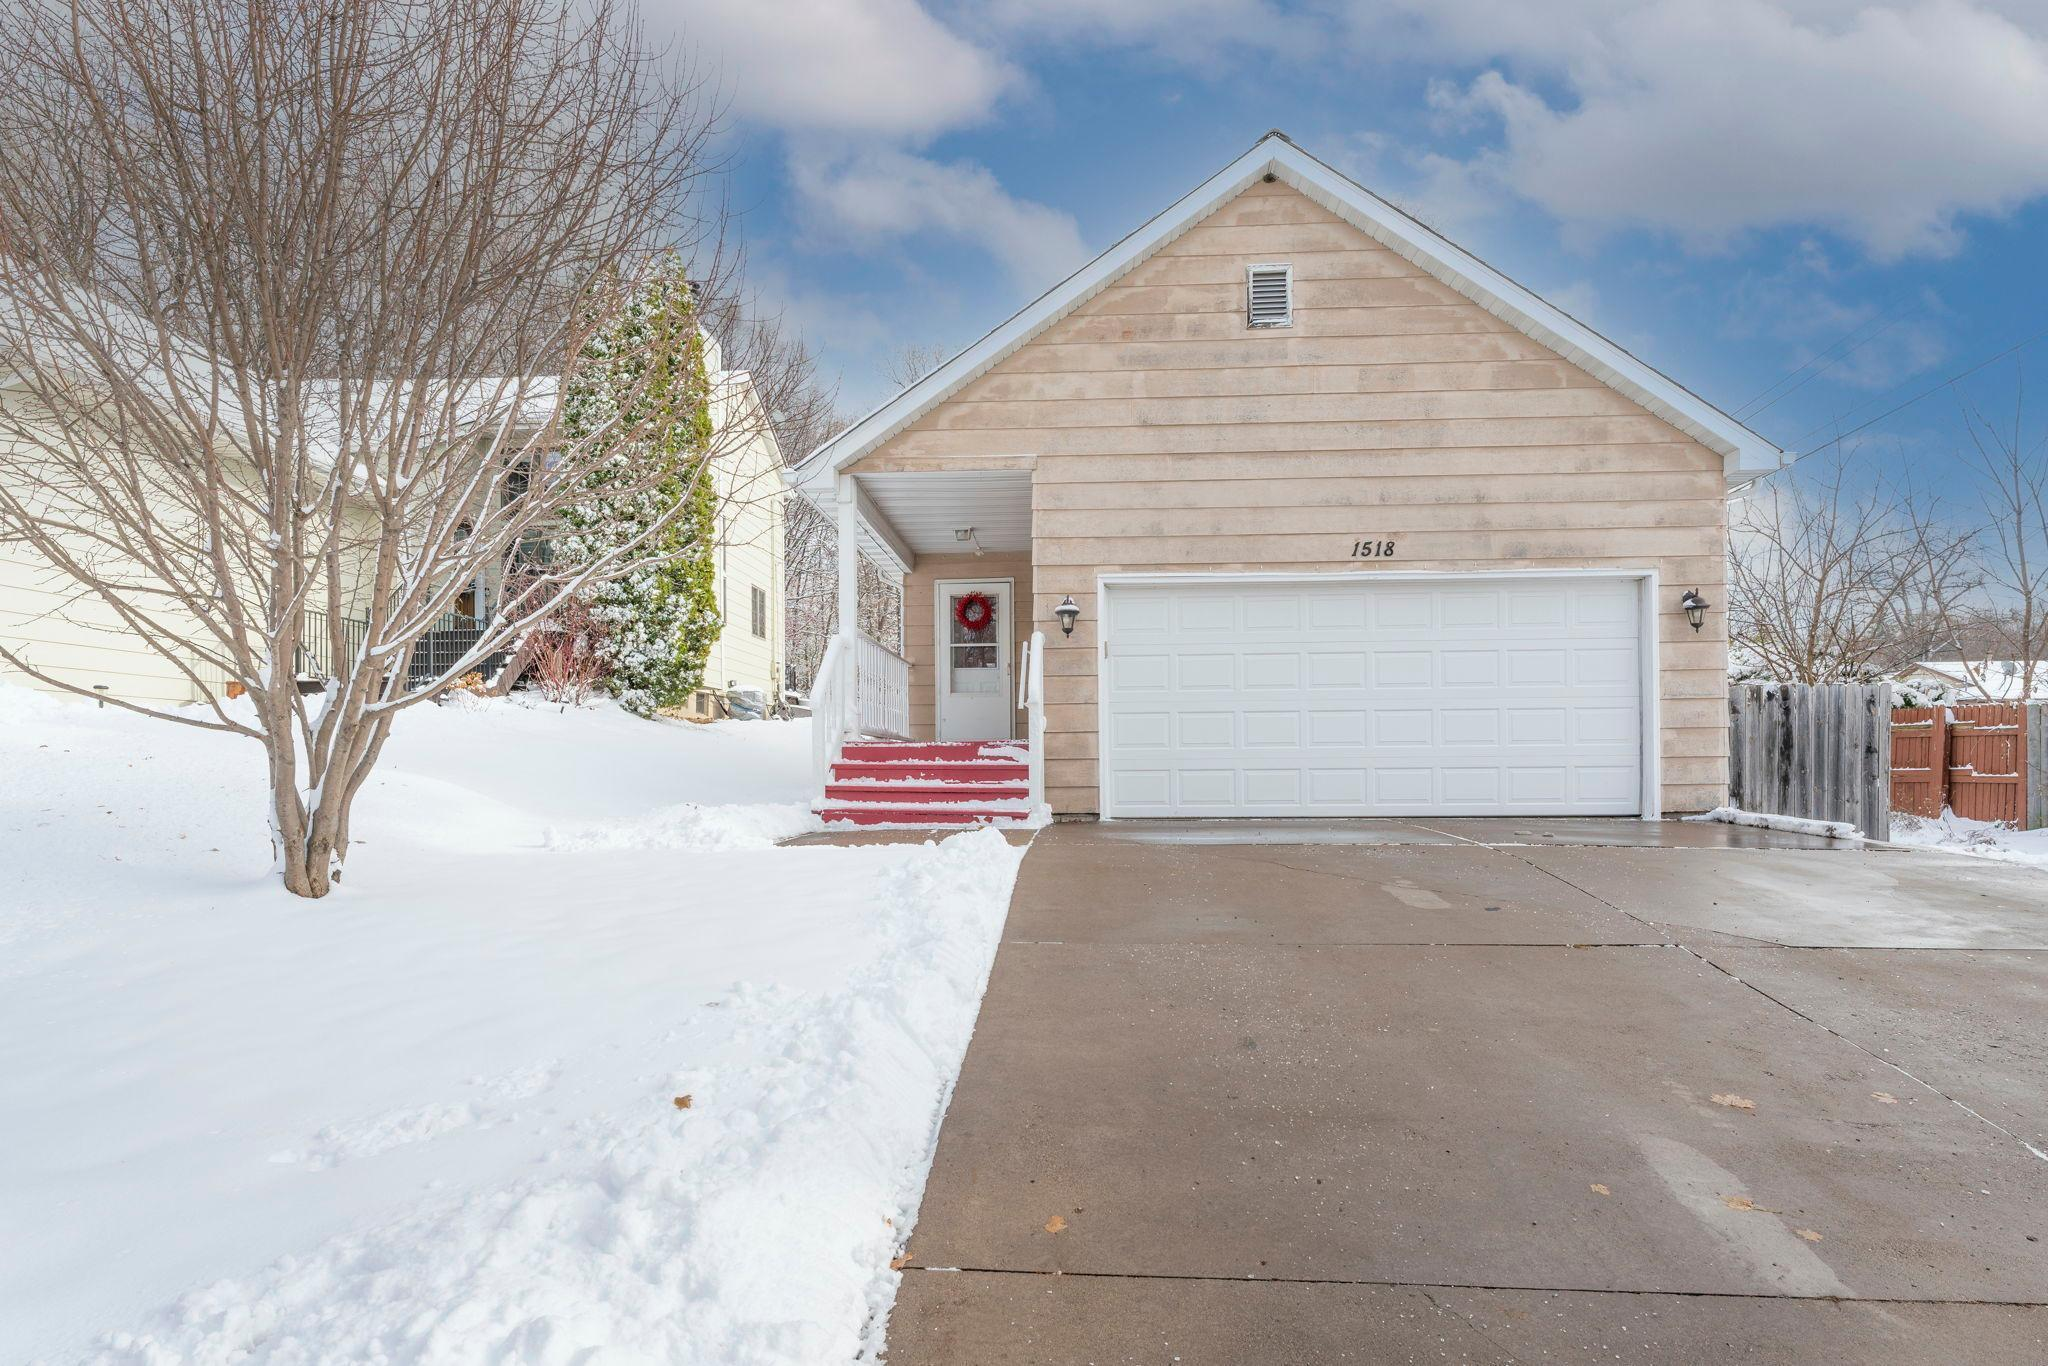 1518 Desoto Street Property Photo - Saint Paul, MN real estate listing